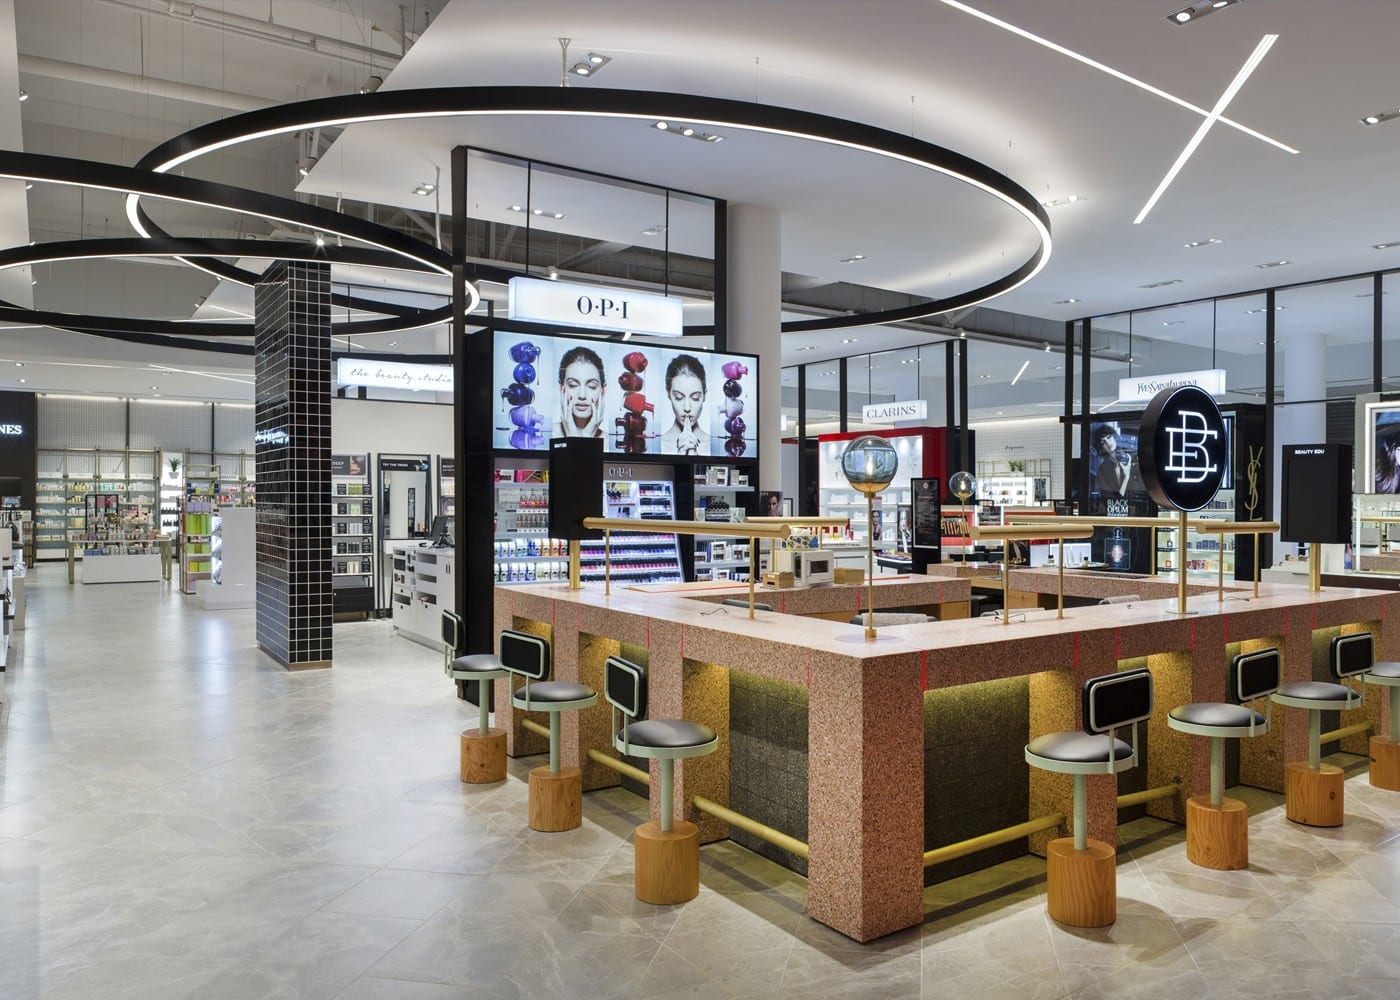 retail lighting design: department store displays